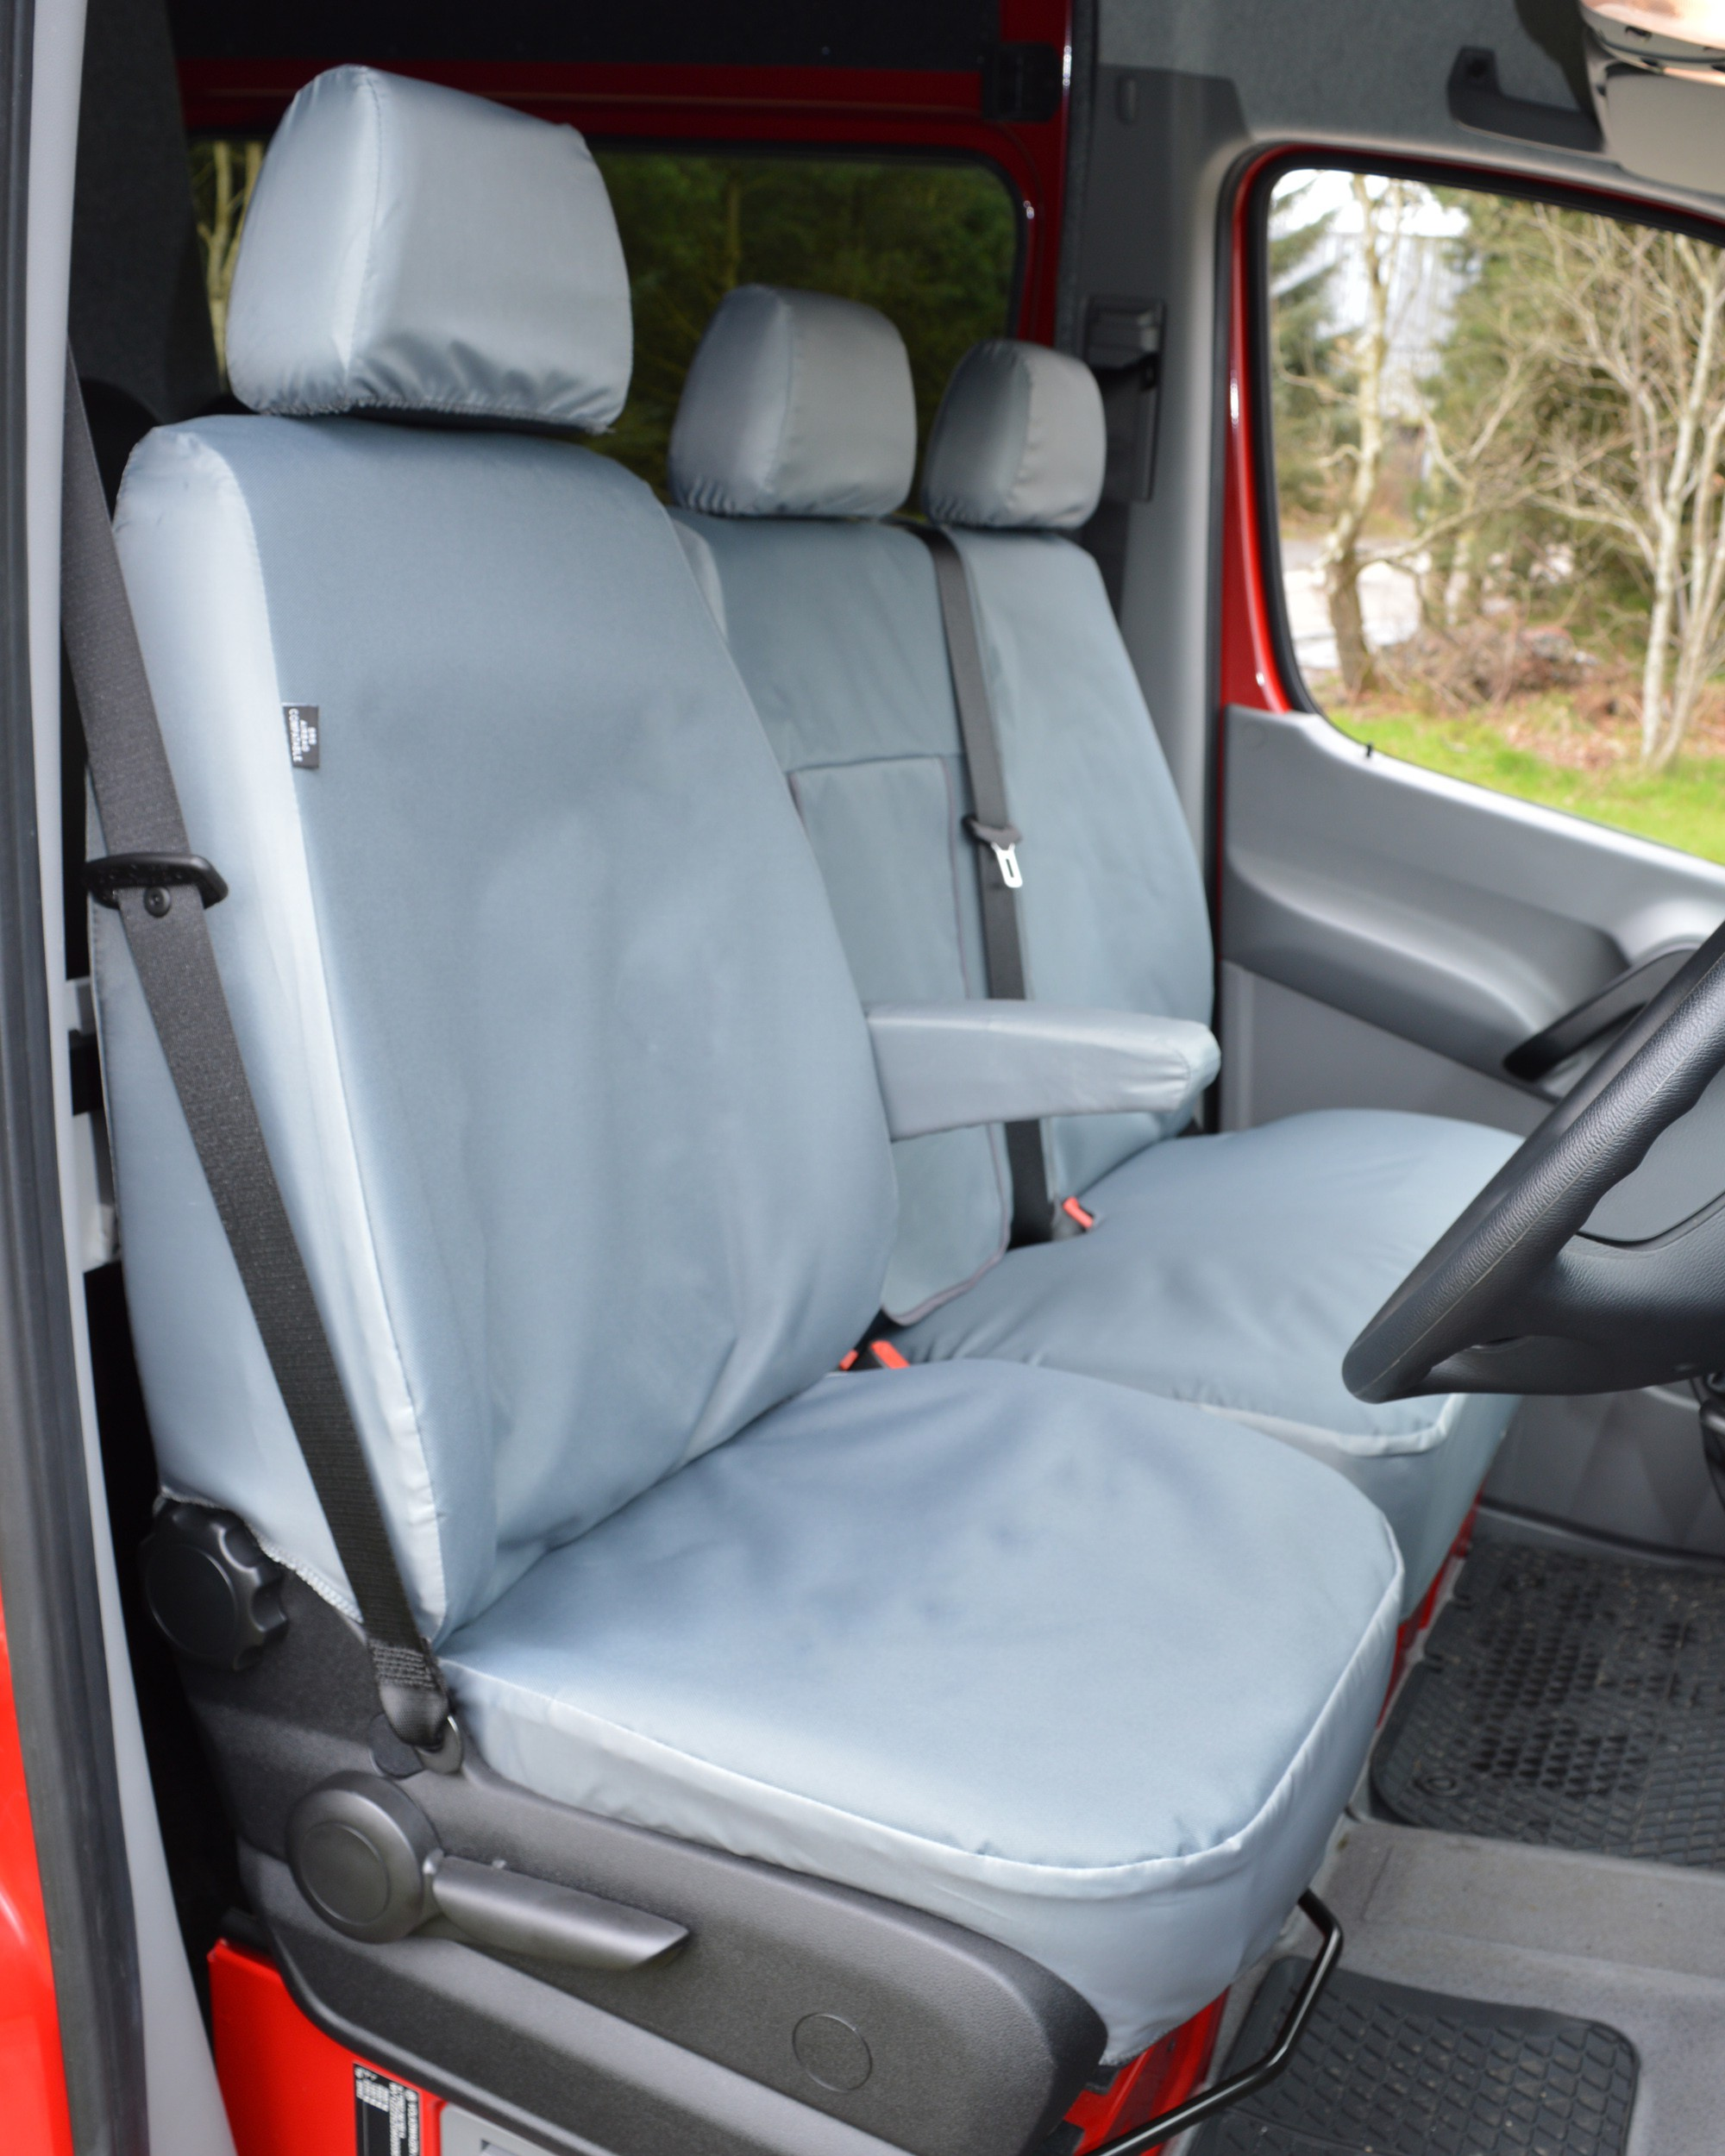 Drivers seat with extra heavy duty grey seat covers